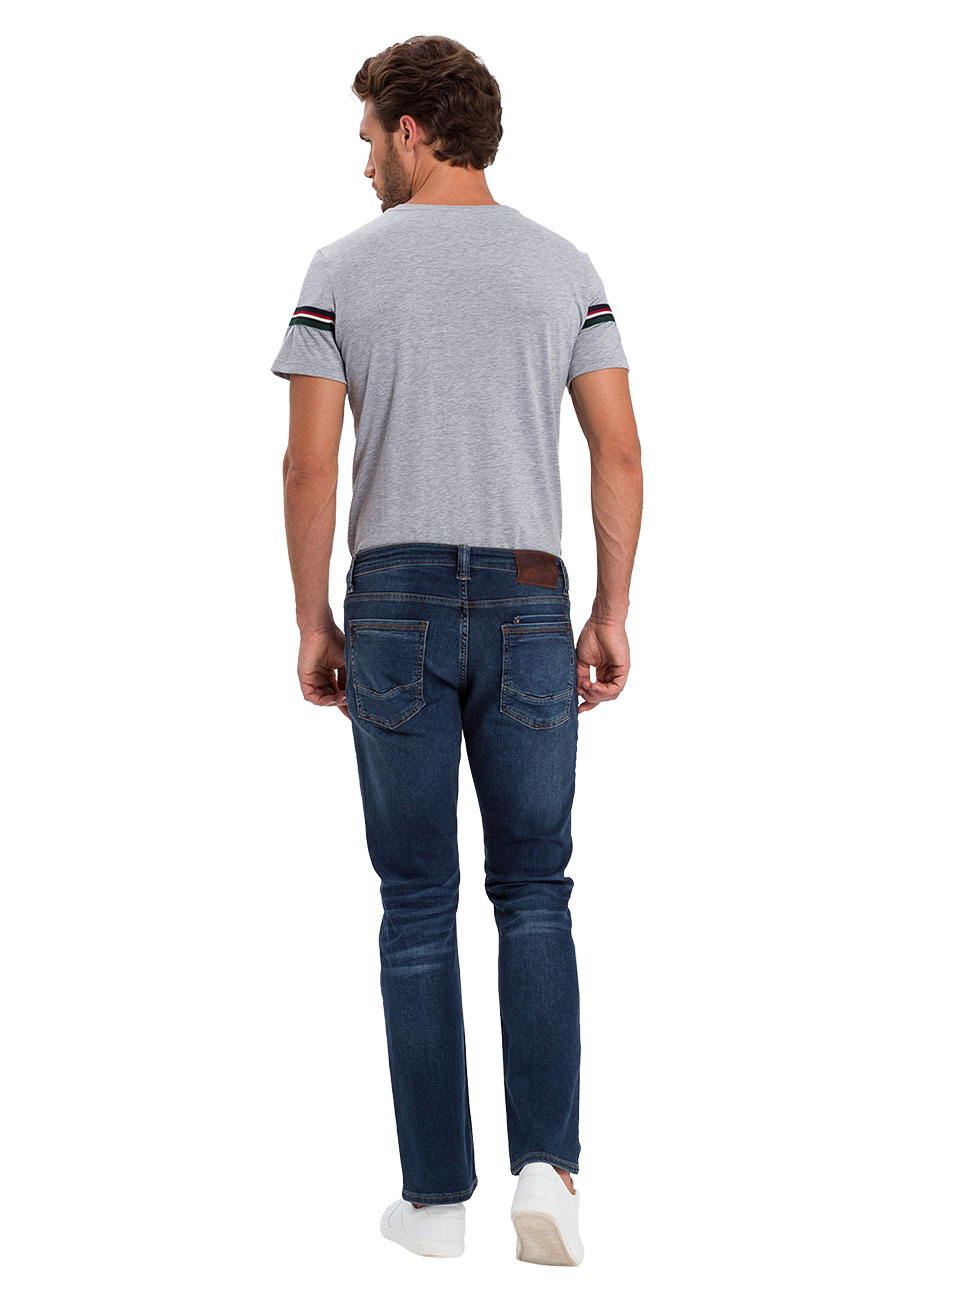 cross-jeans-herren-jeans-dylan-regular-fit-blau-dark-blue, 53.90 EUR @ jeans